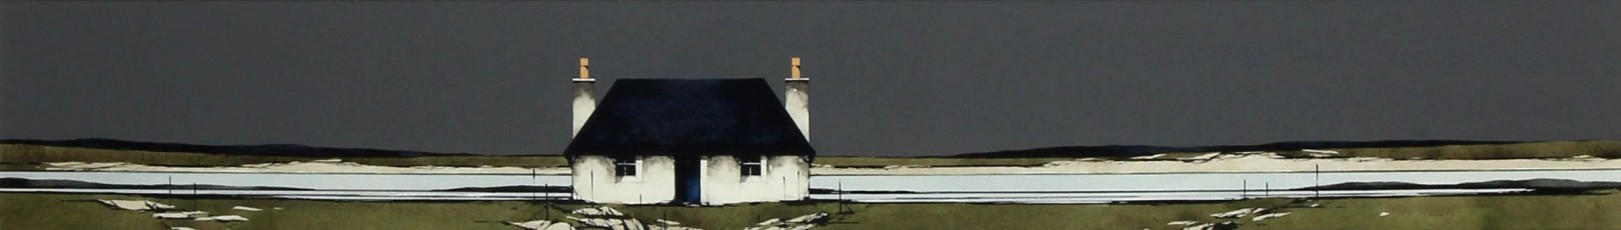 Ron Lawson _Original_Watercolour and Gouache_Tiree Cottage, Ruiag_image 6x38.5